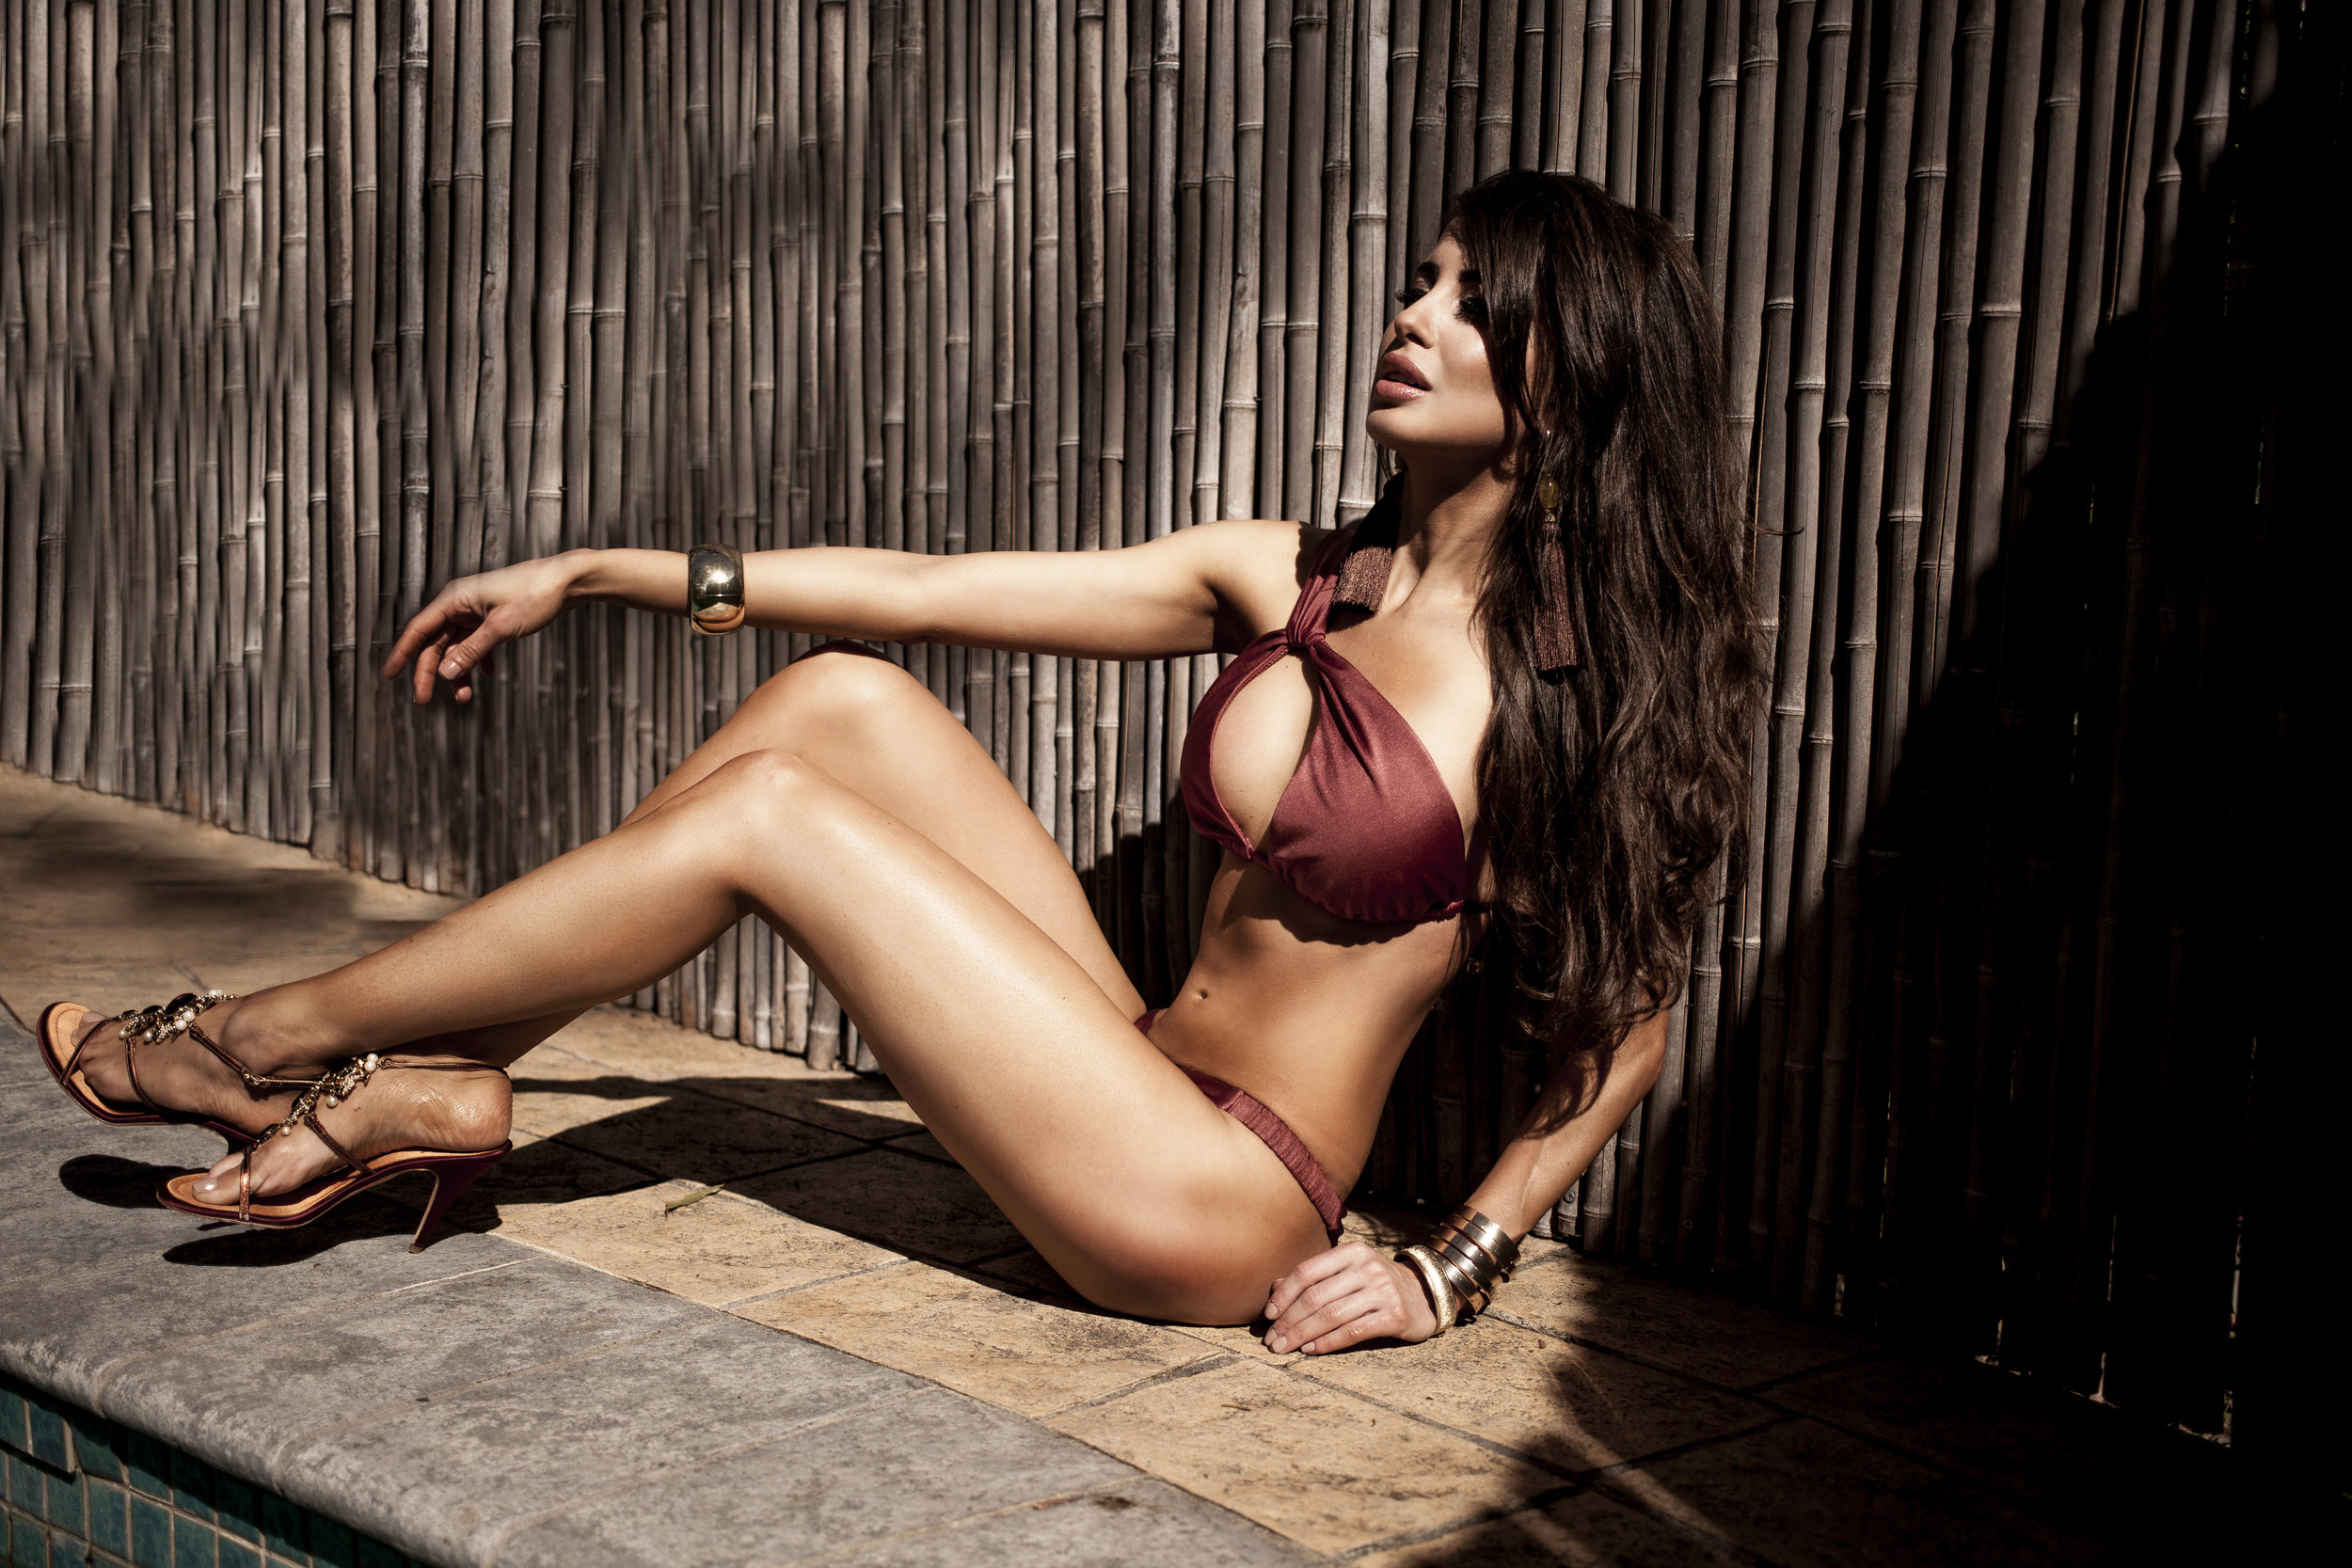 La Koi epitomizes femininity - Sexy, yet elegant designs epitomize the glamorous lifestyle. Styles are intricate, yet versatile enough for all shapes and sizes. Sleek sensuality and soft sophistication are showcased in the stunning swim design